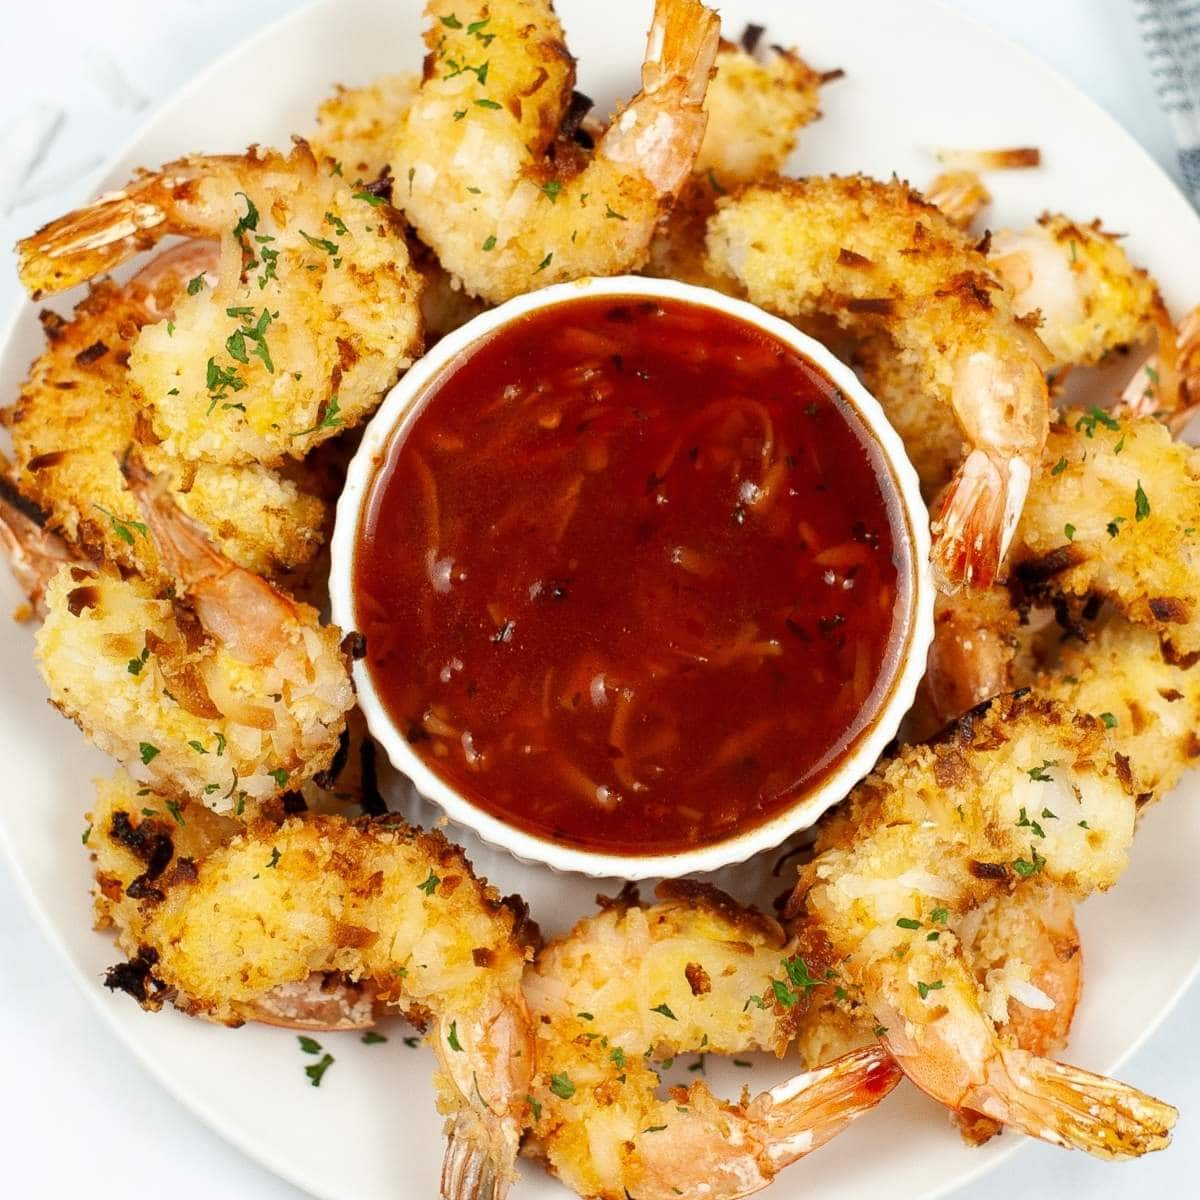 air fried coconut shrimp arranged around a cup of sauce on a white plate